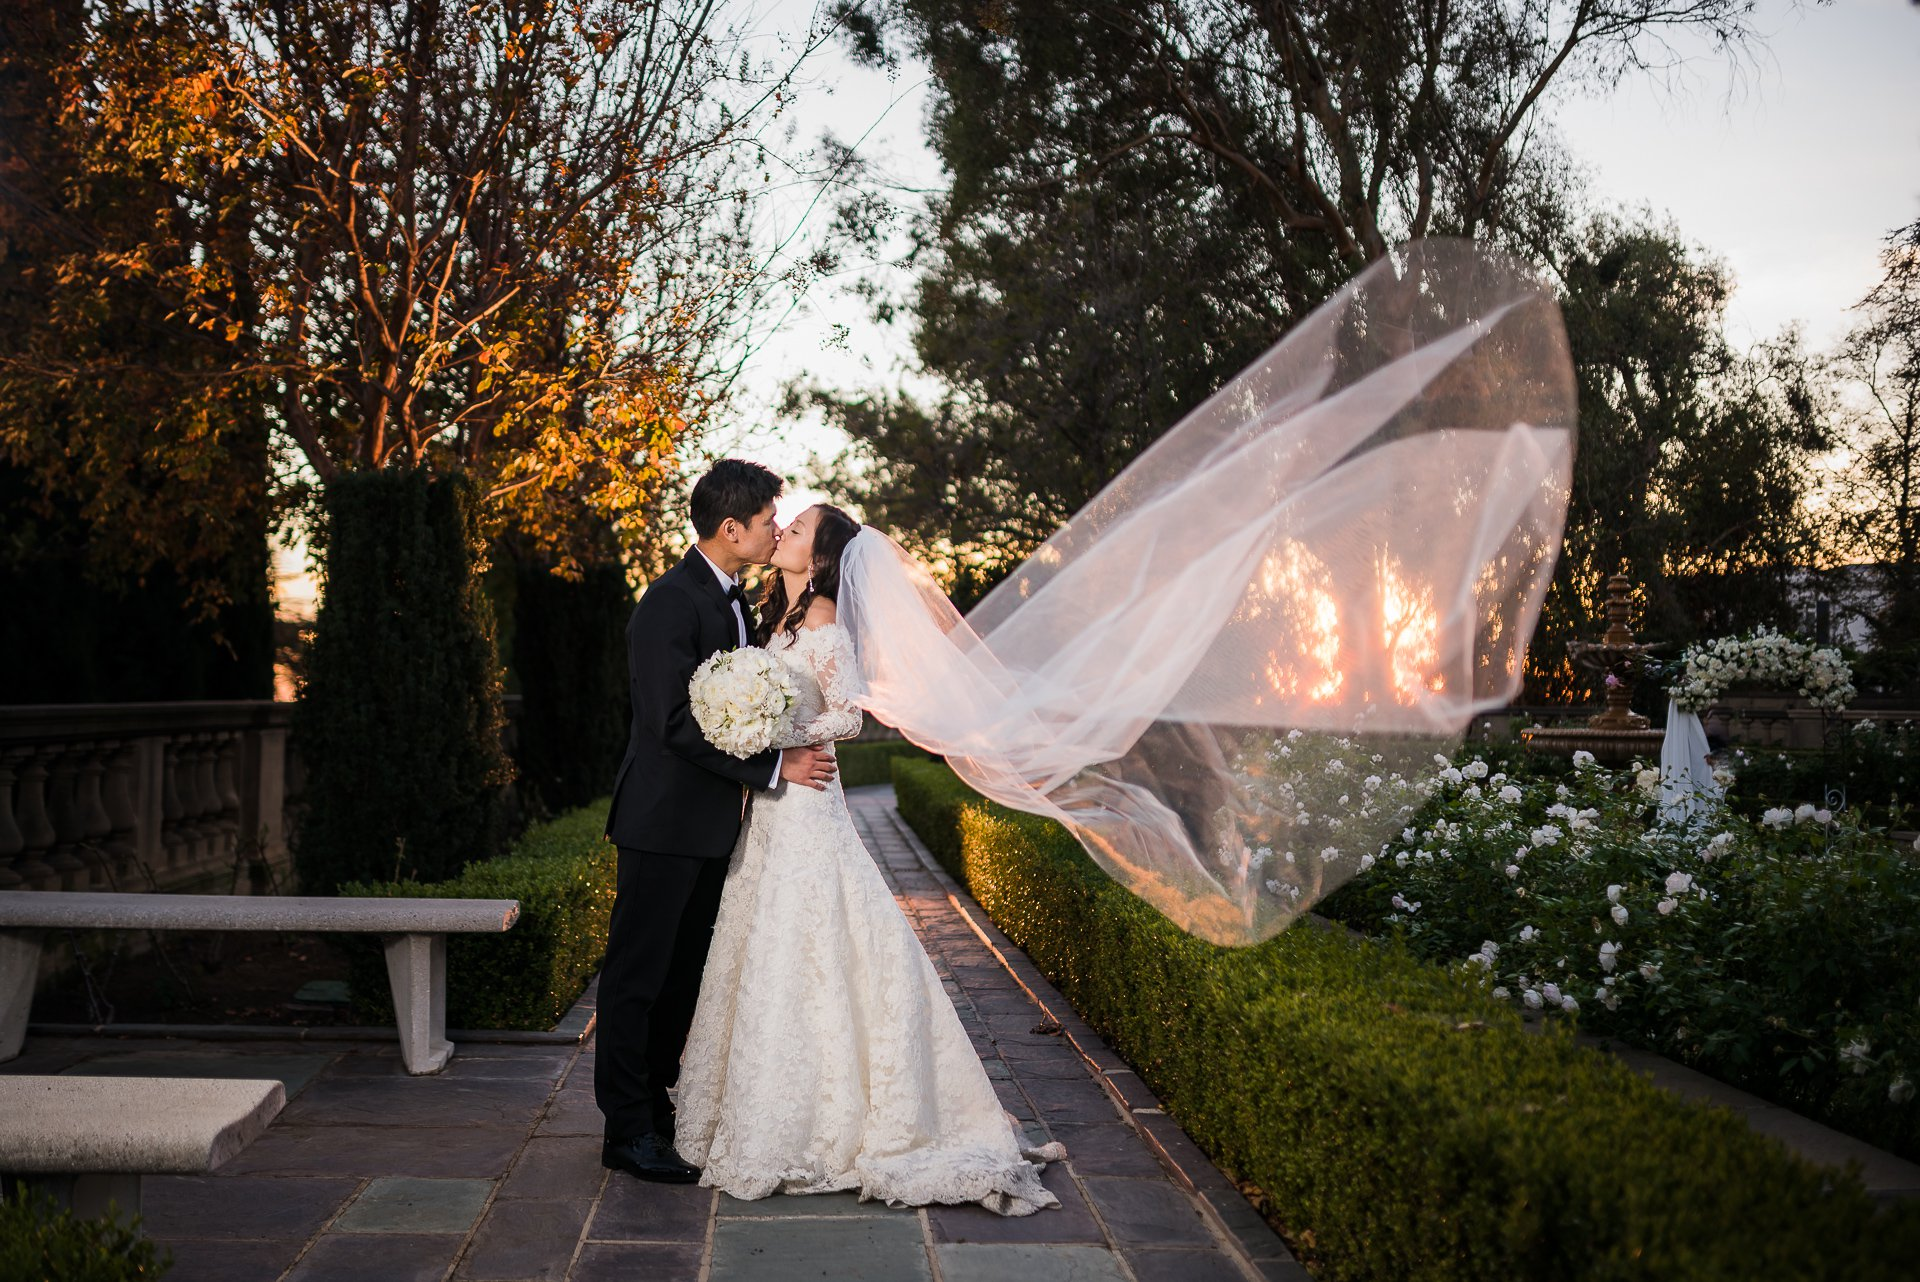 00-Greystone-Mansion-Los-Angeles-Wedding-Photography.jpg